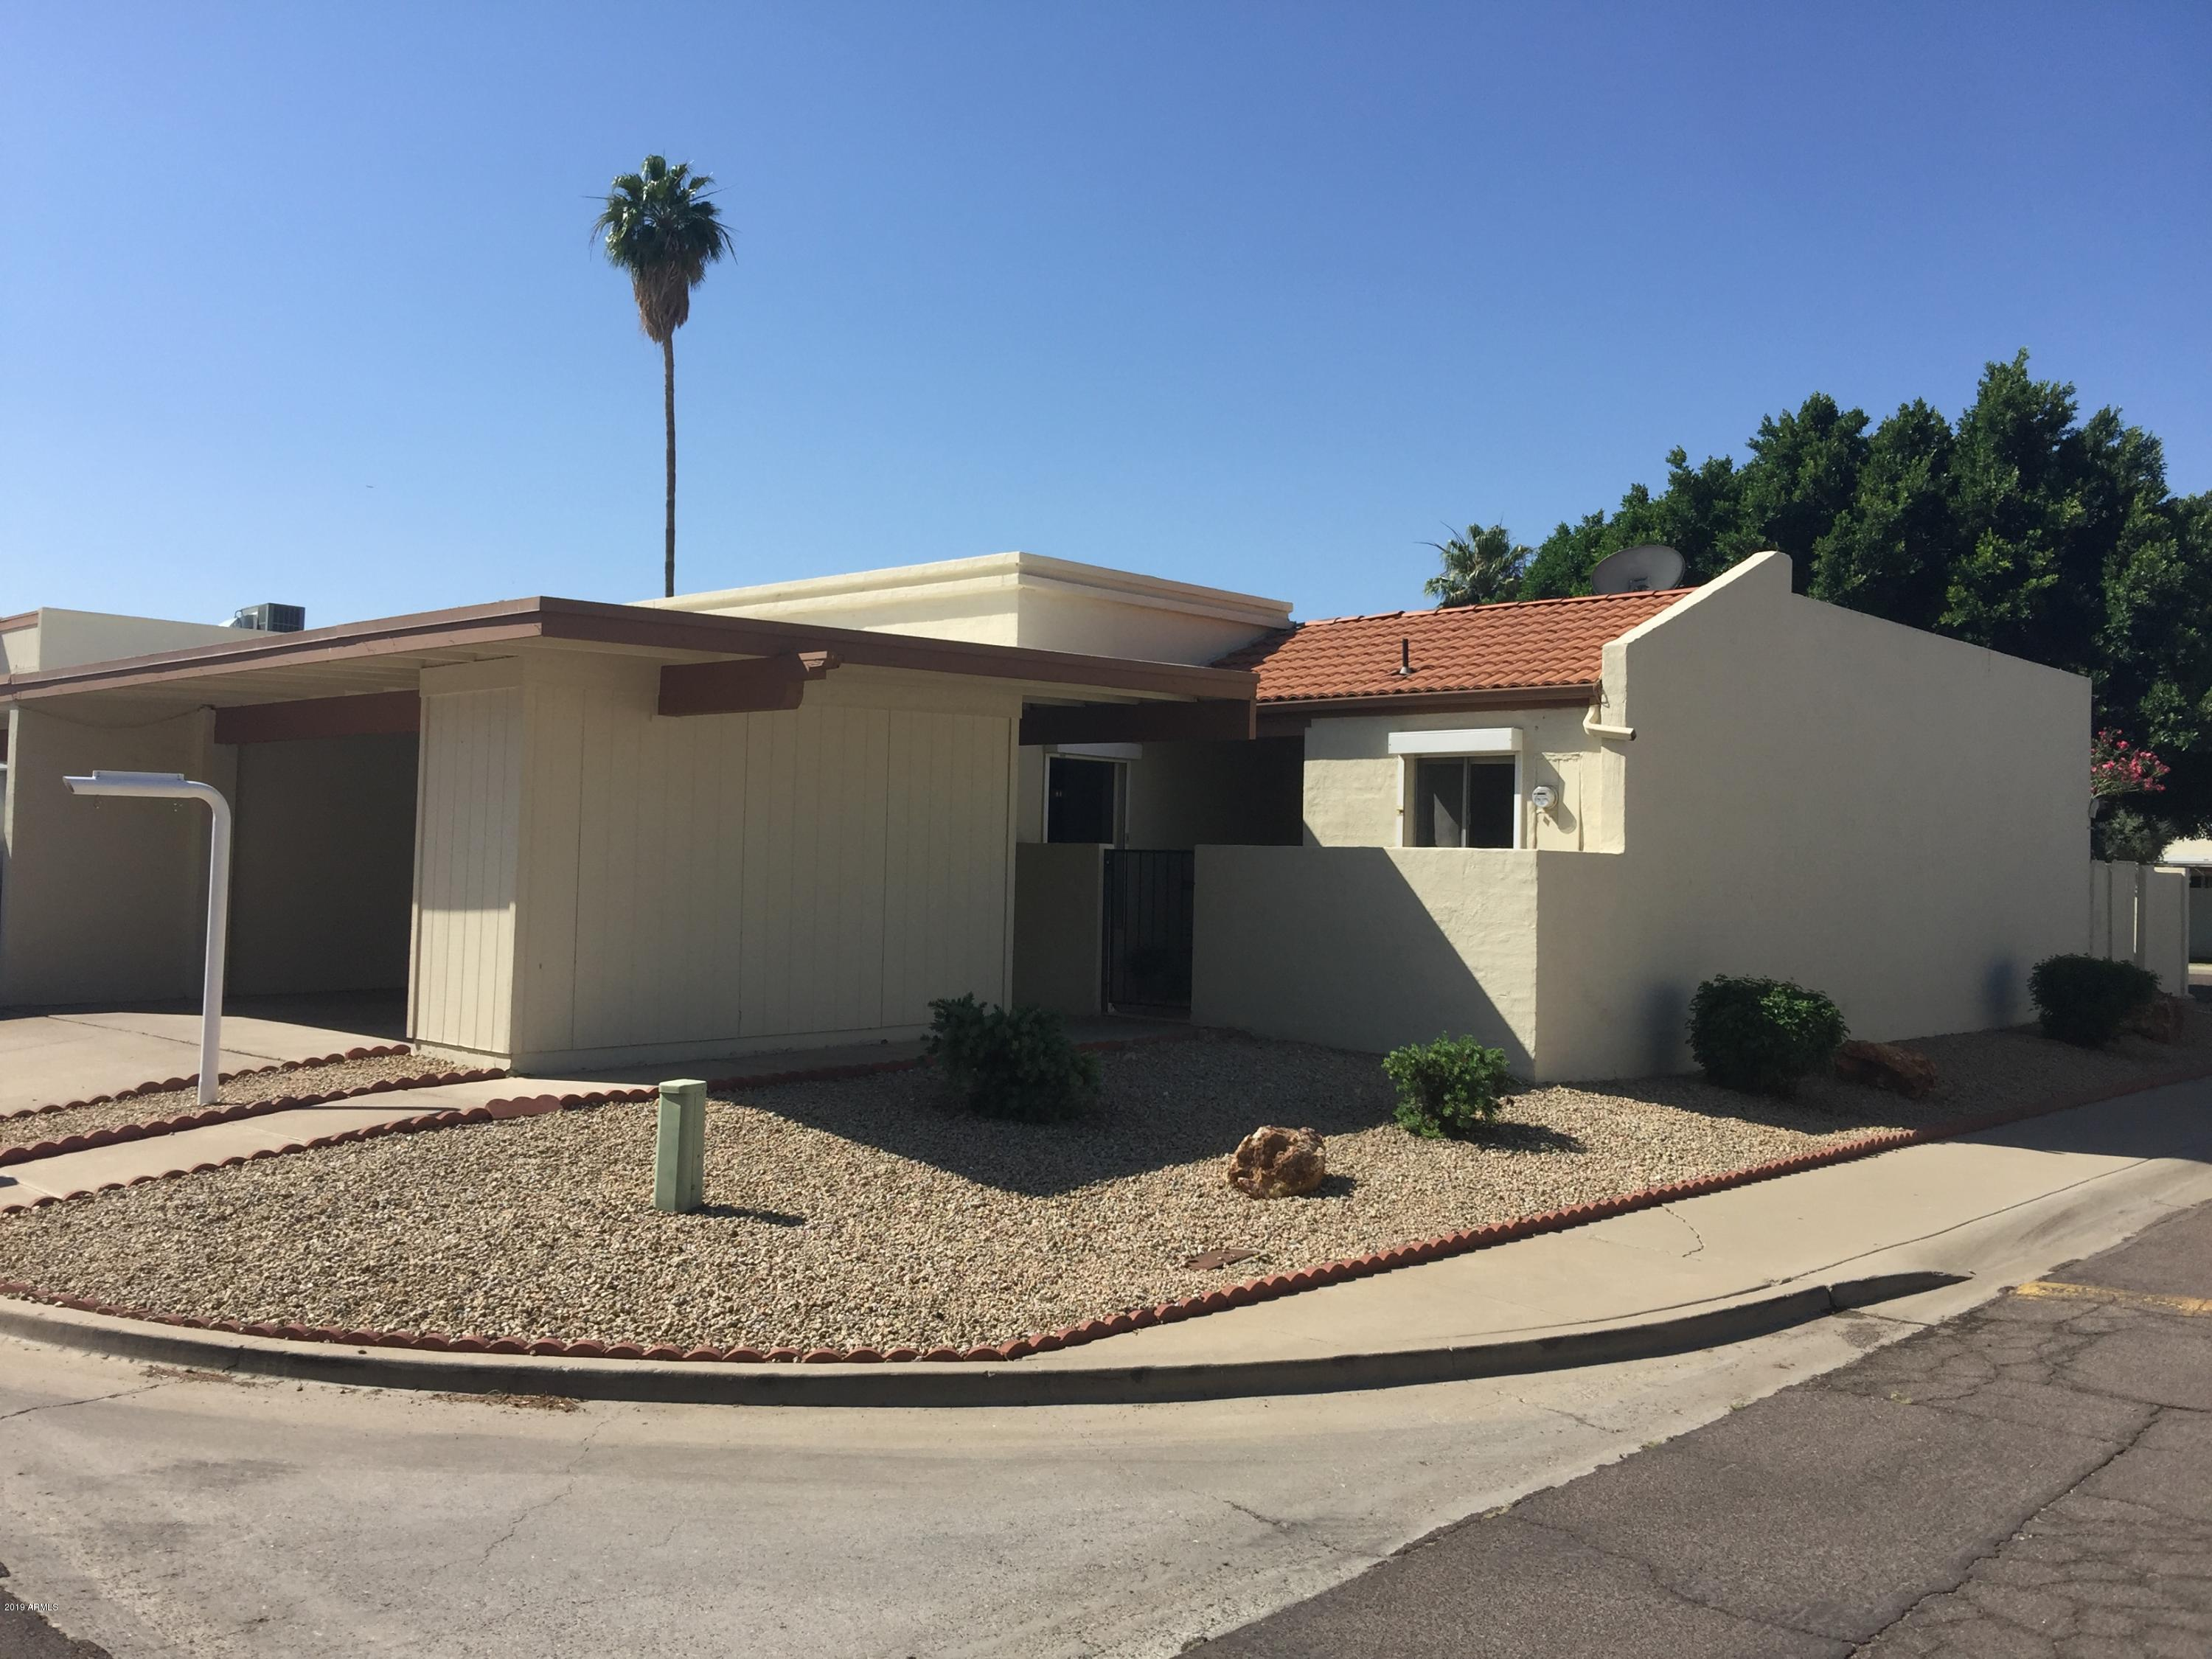 Photo of 2507 W SHARON Avenue, Phoenix, AZ 85029